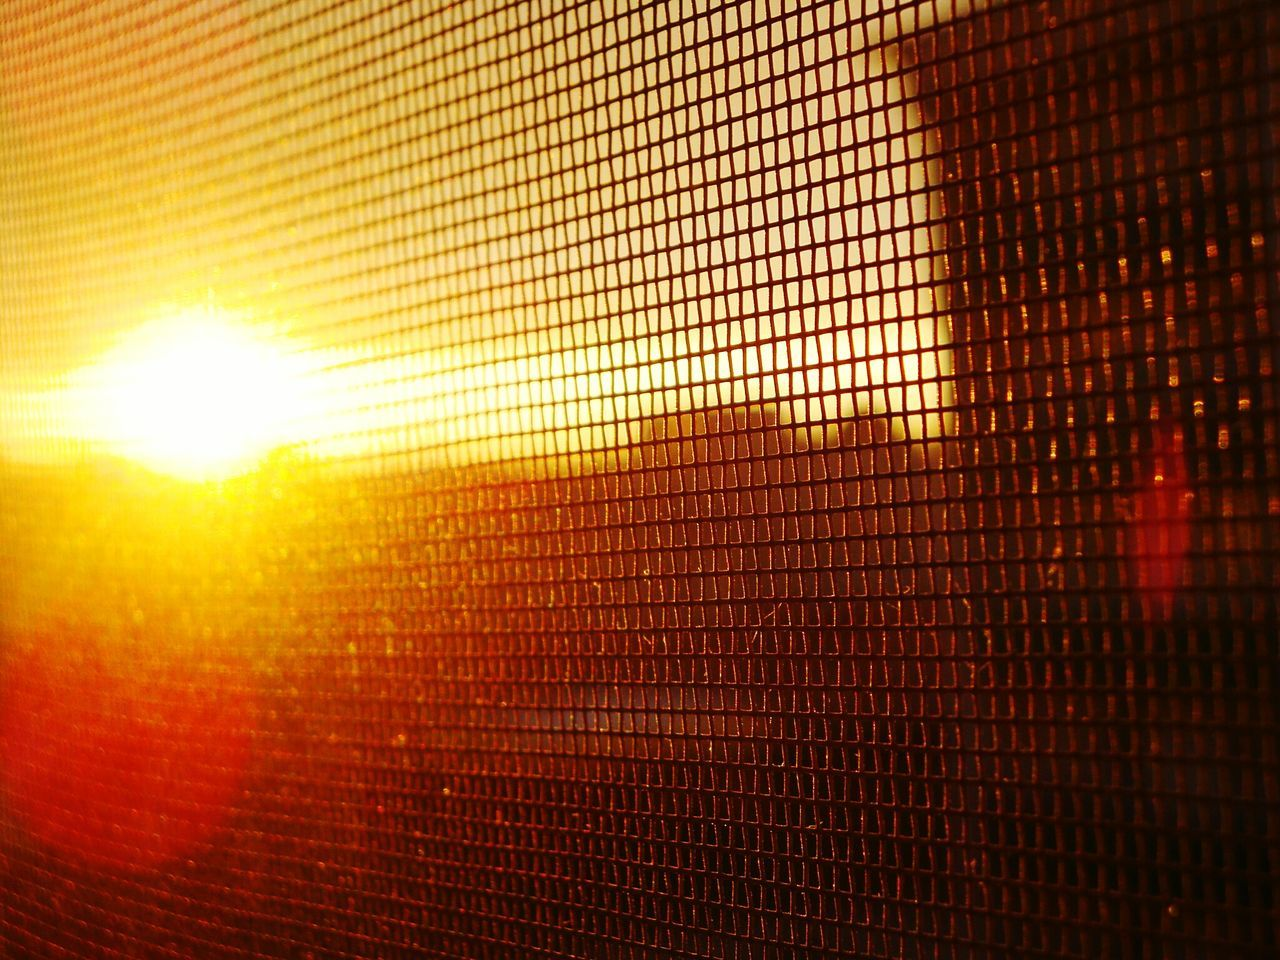 sunbeam, sun, backgrounds, bright, pattern, no people, shiny, textured, full frame, sunset, close-up, sunlight, yellow, indoors, day, pixelated